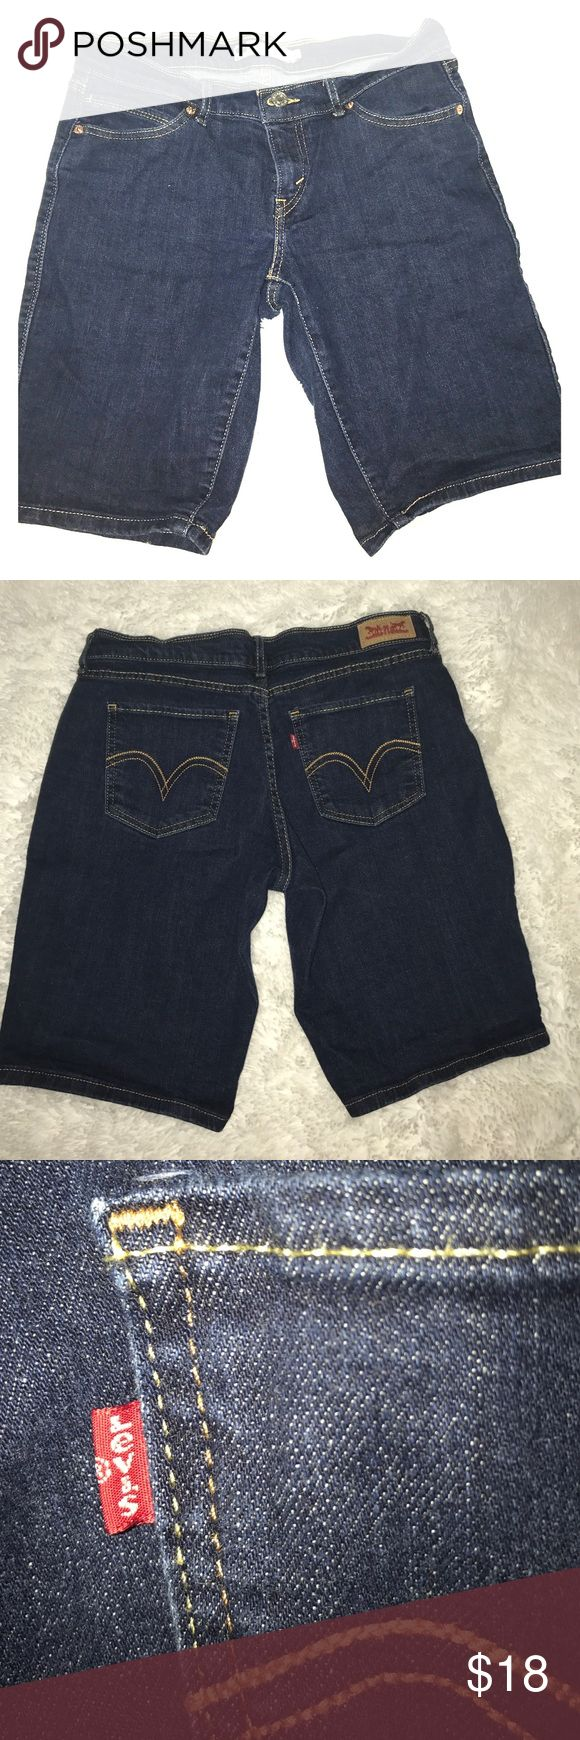 Dark Blue Levi's Bermuda Shorts Levi bermuda shorts. Hardly ever wore them, they're still in great condition and look brand new still. Levi's Shorts Bermudas